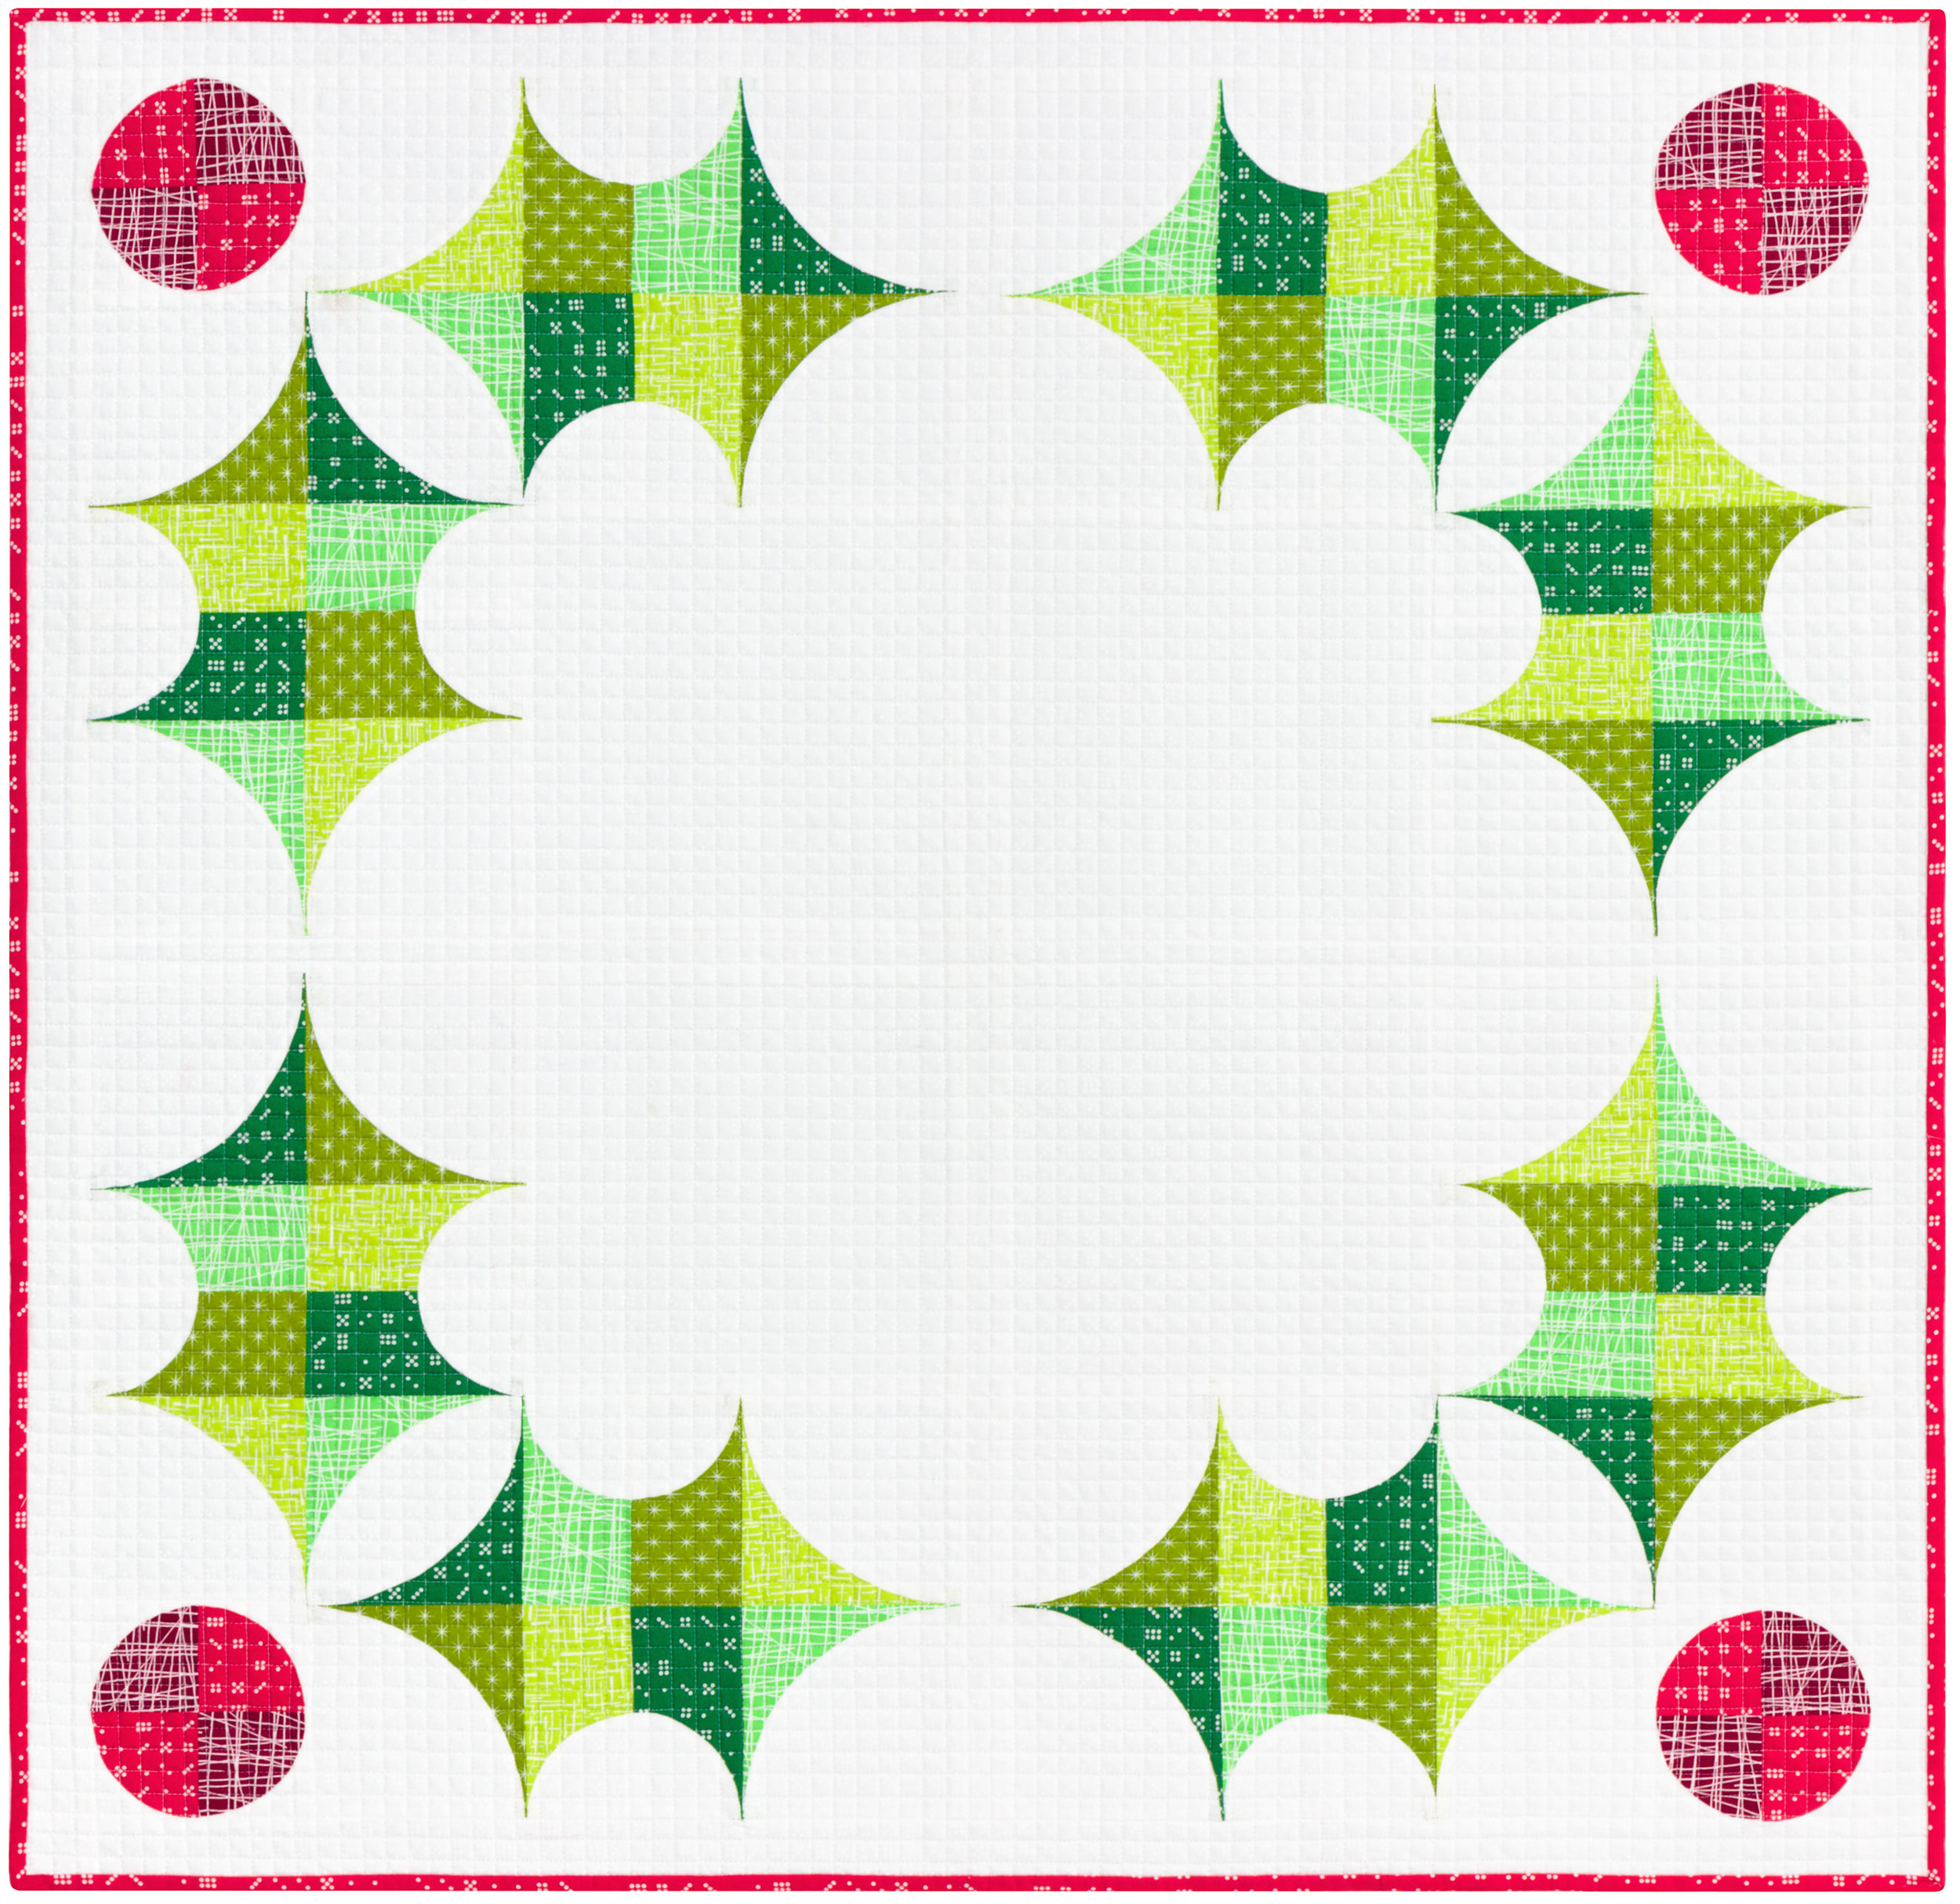 VC008_TheHollyHolidayQuilt_Violet Craft Modern Classics_Holly Holiday_photobyRK.jpg